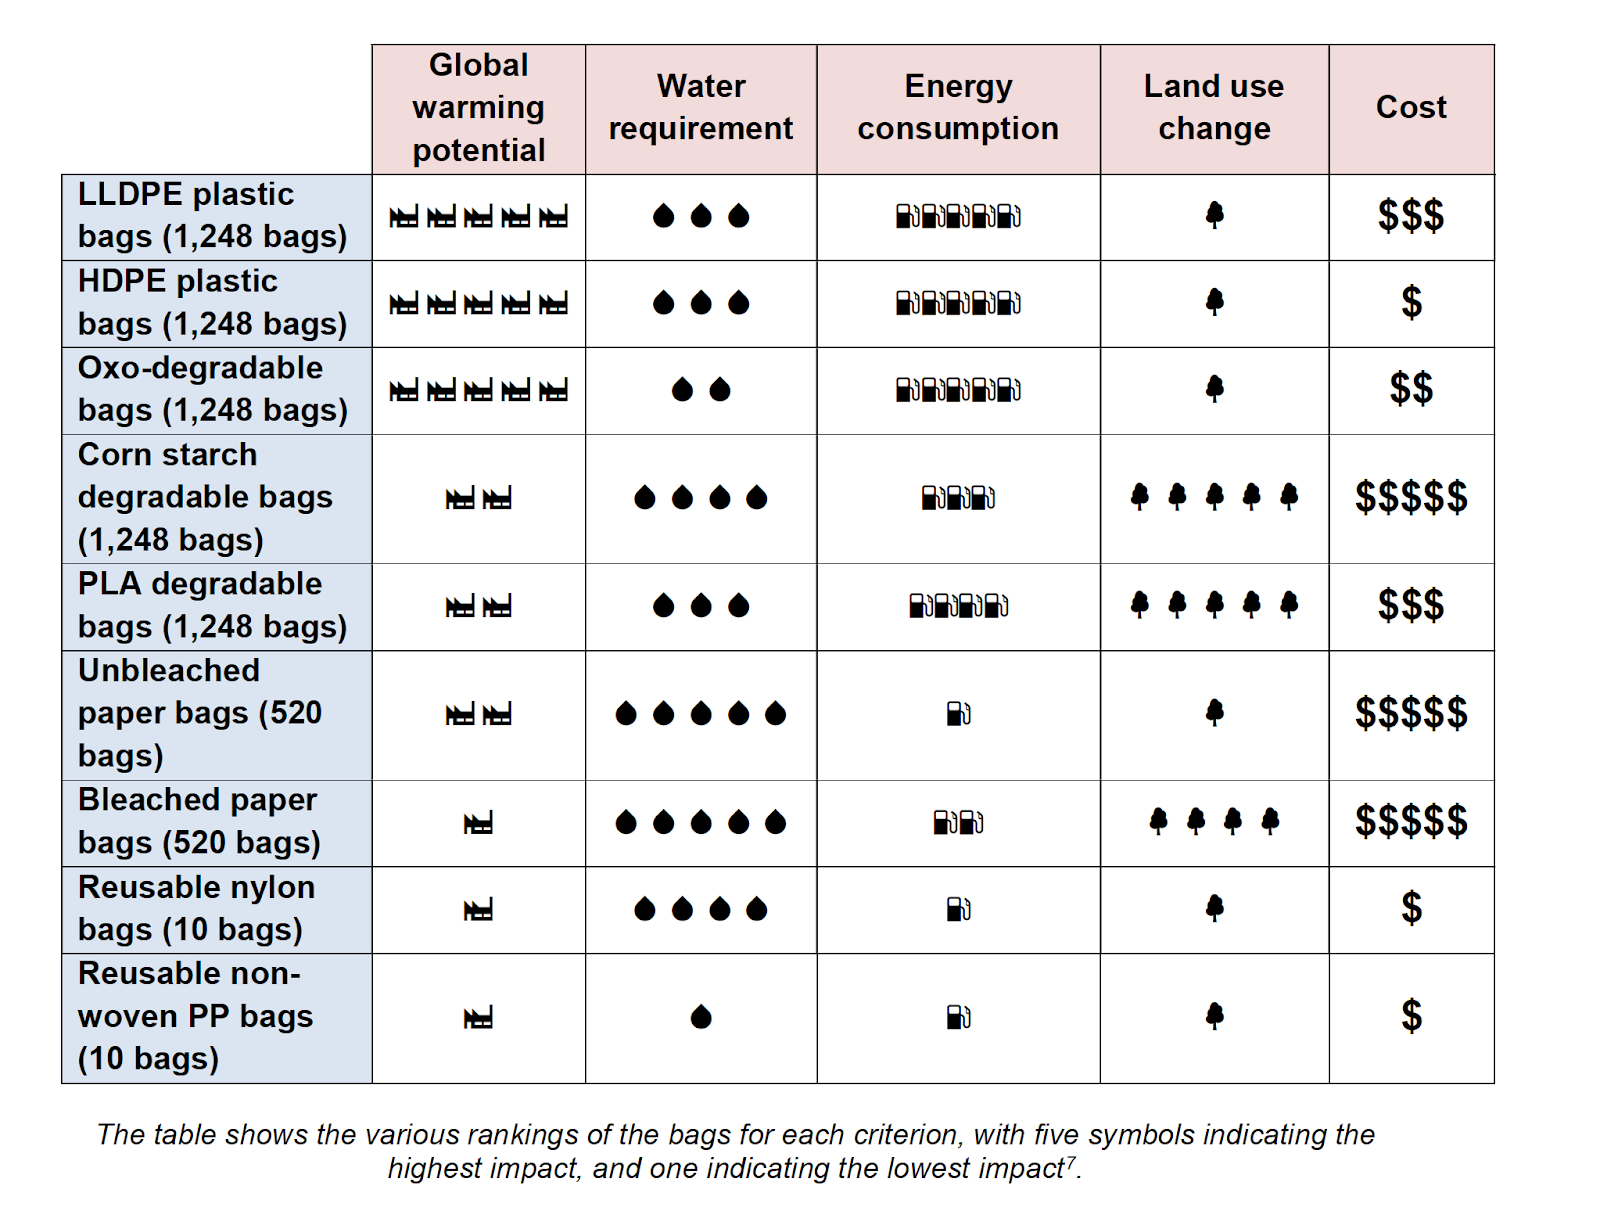 lifecycle assessment of plastic and other dosposables